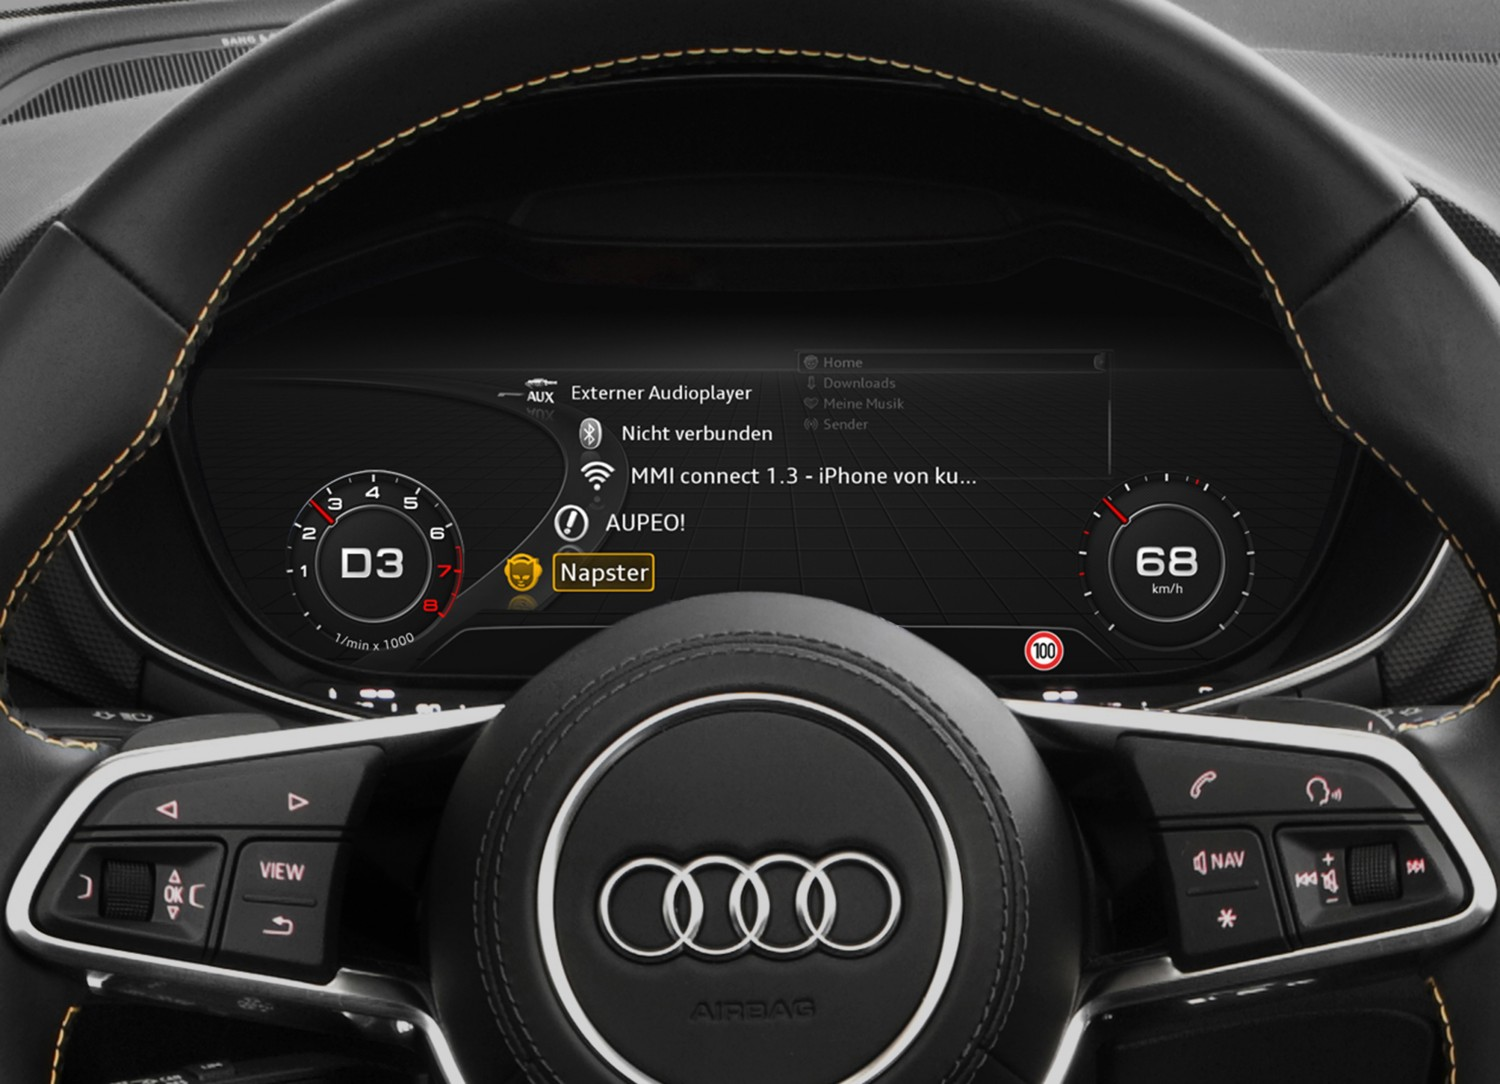 "Car-Media ""Napster"" und ""Aupeo!"" bei Tempo 200 - Audi holt Streaming-Dienste ins Cockpit - News, Bild 1"